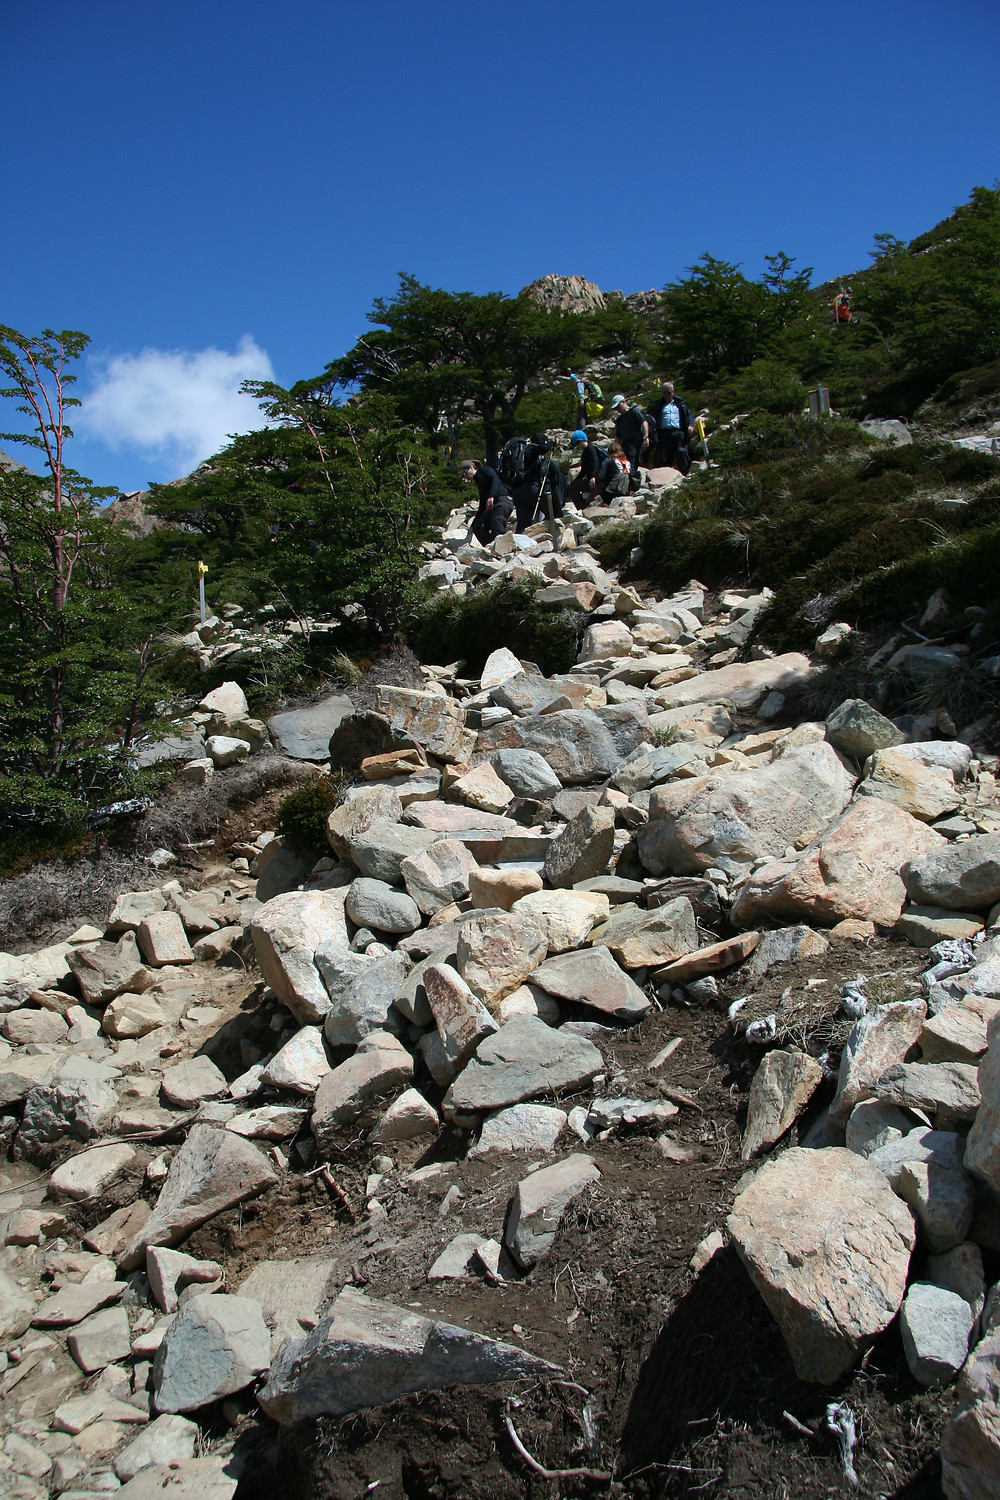 The steep climb up the last mountain is full of rocks and boulders that you have to navigate around